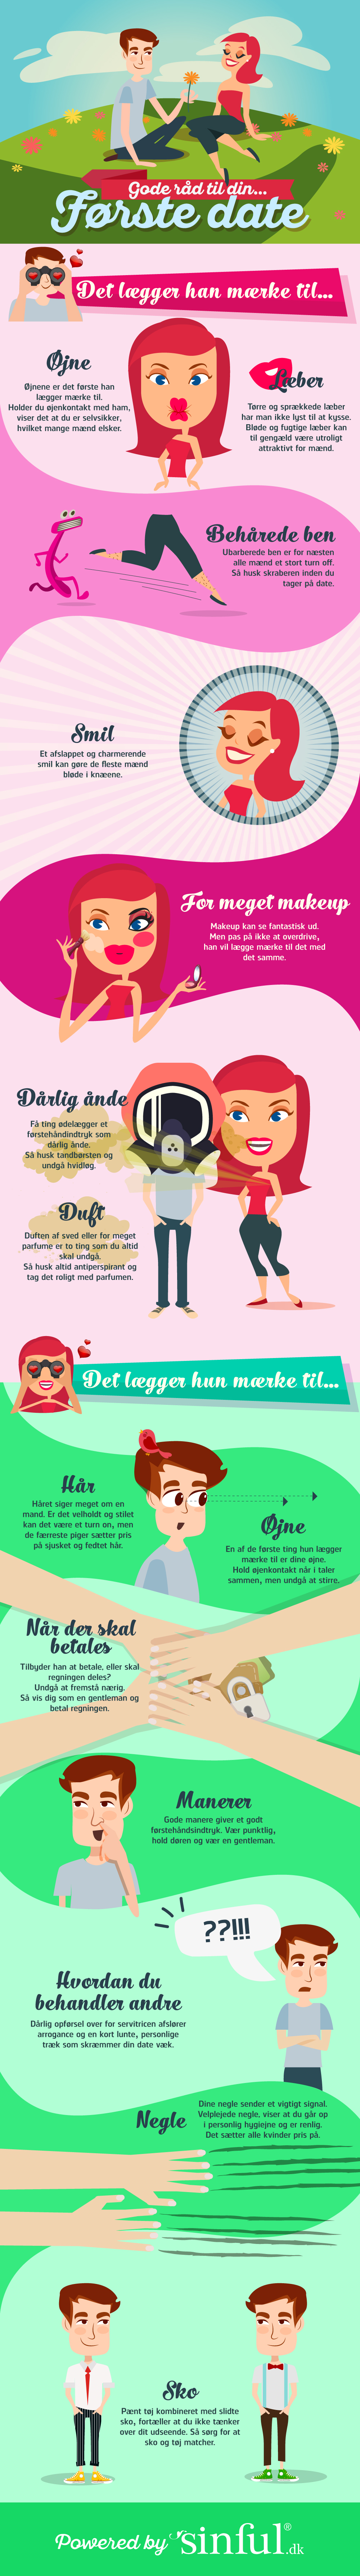 dating tips for mænd Guldborgsund